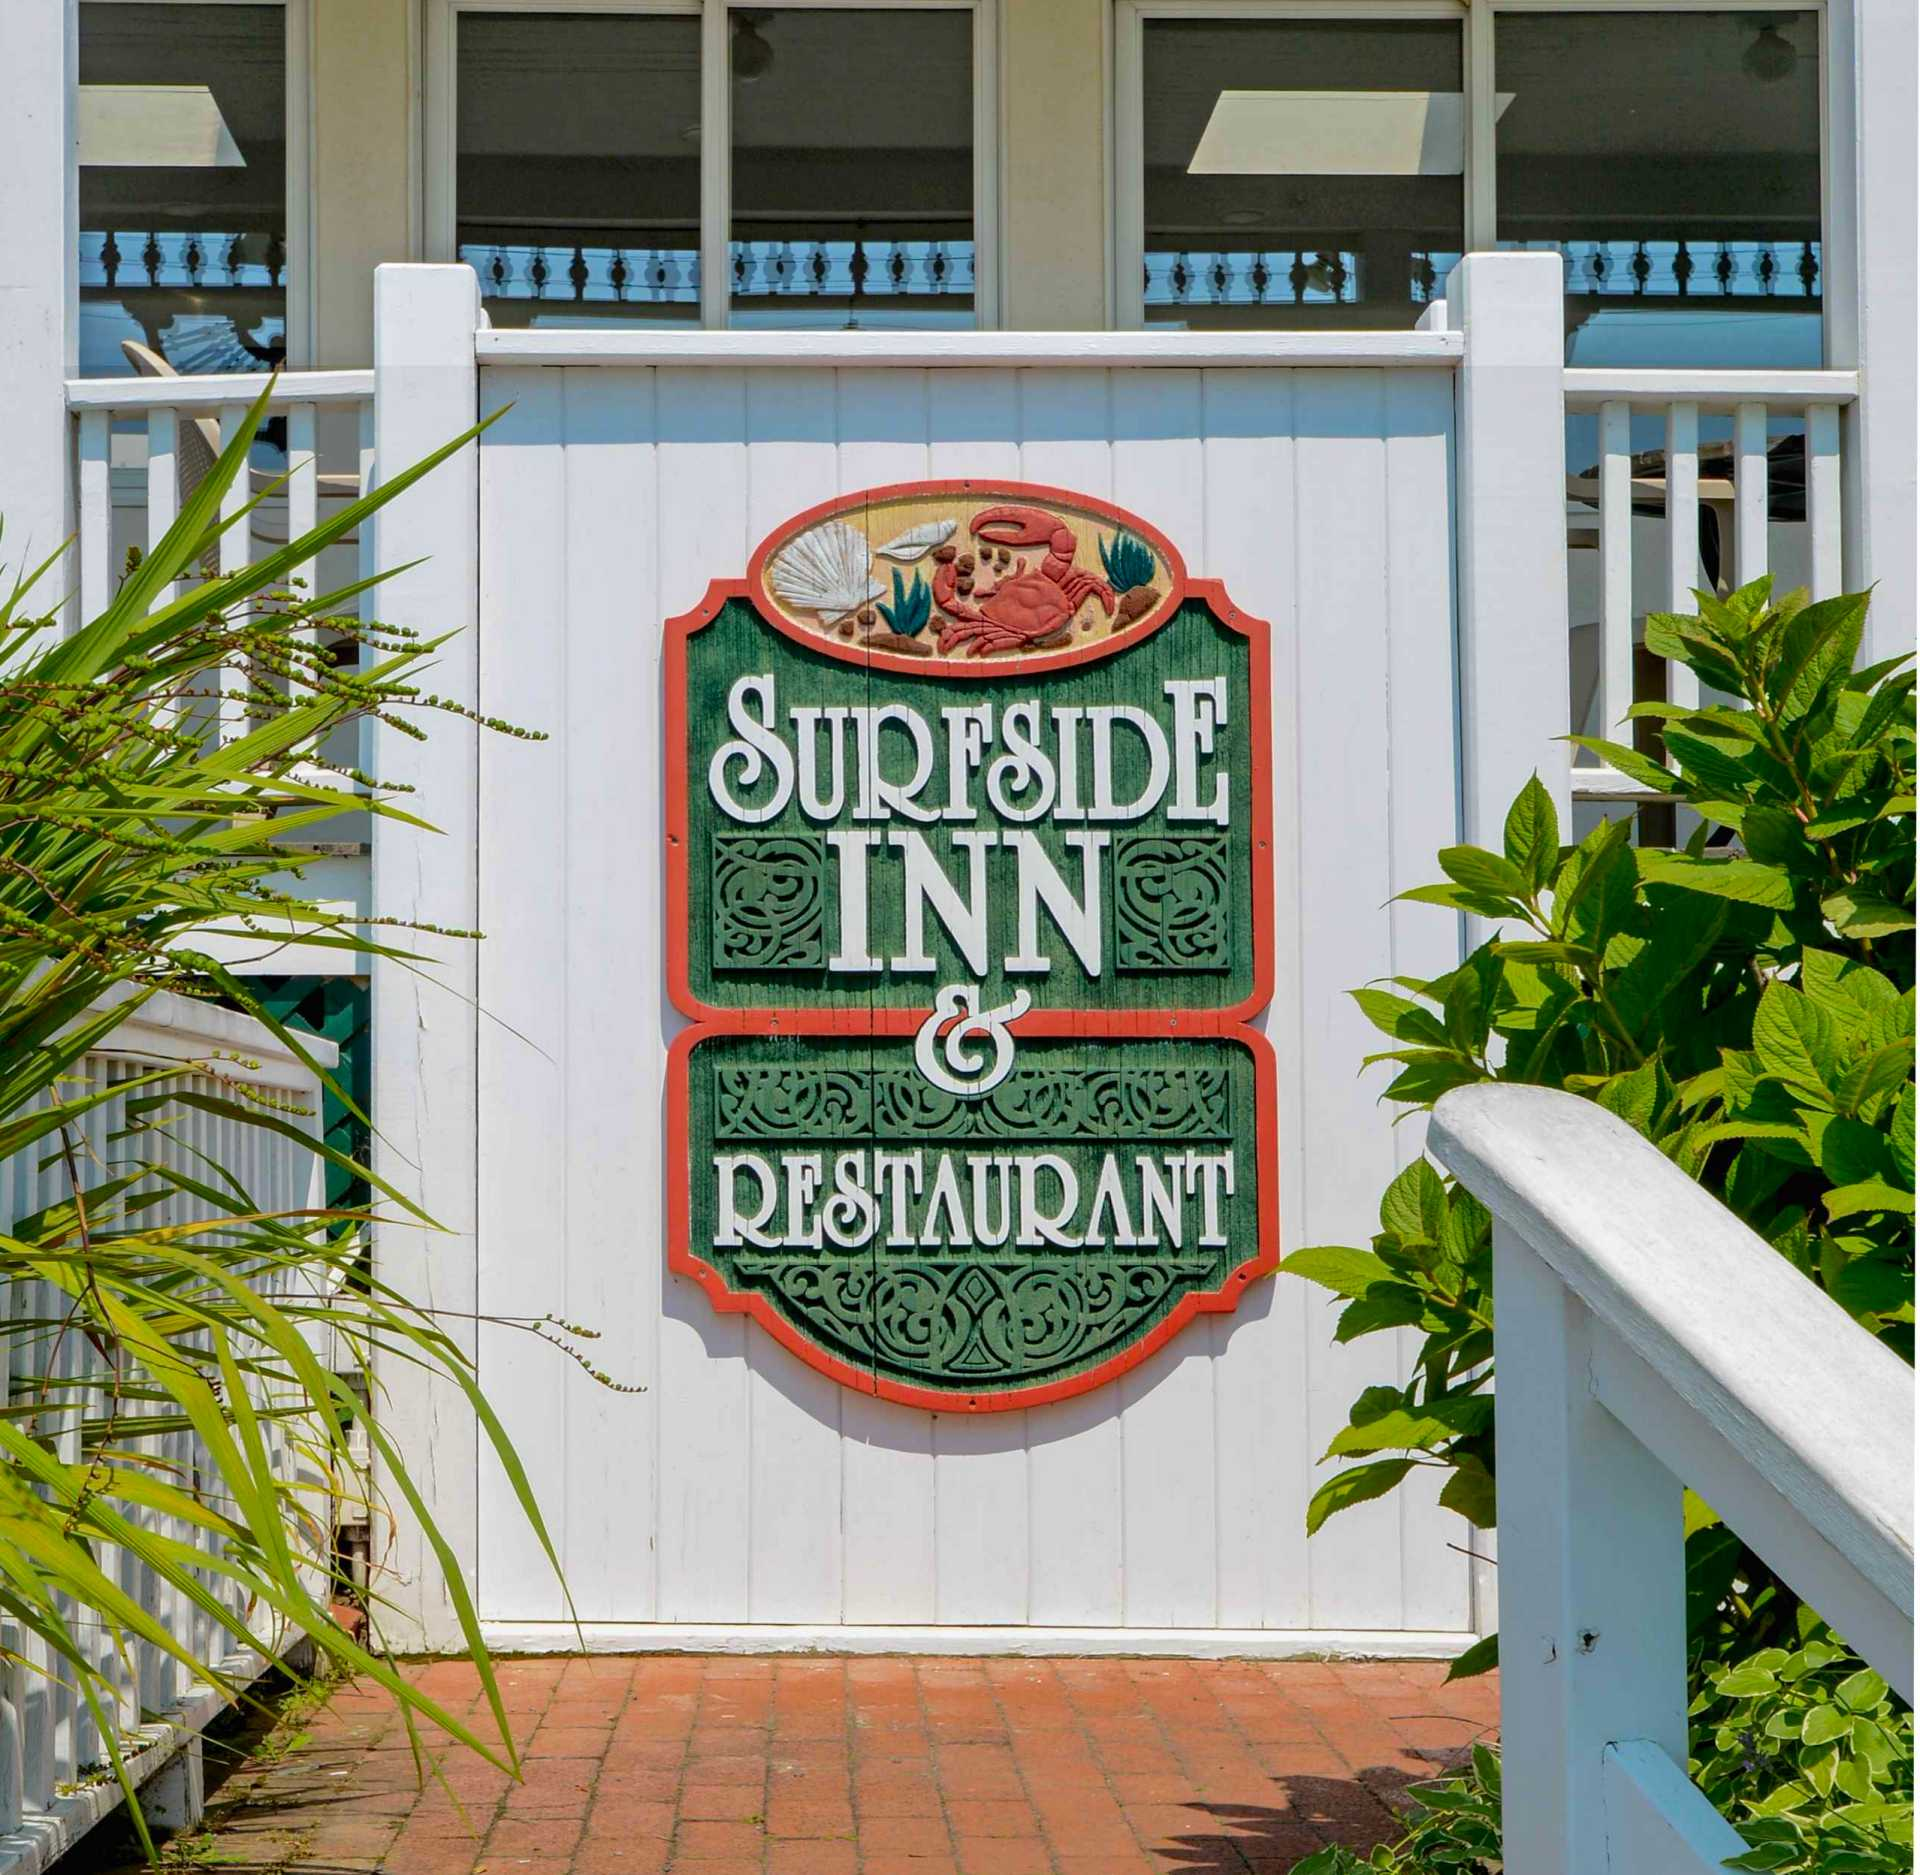 Surfside Inn and Restaurant